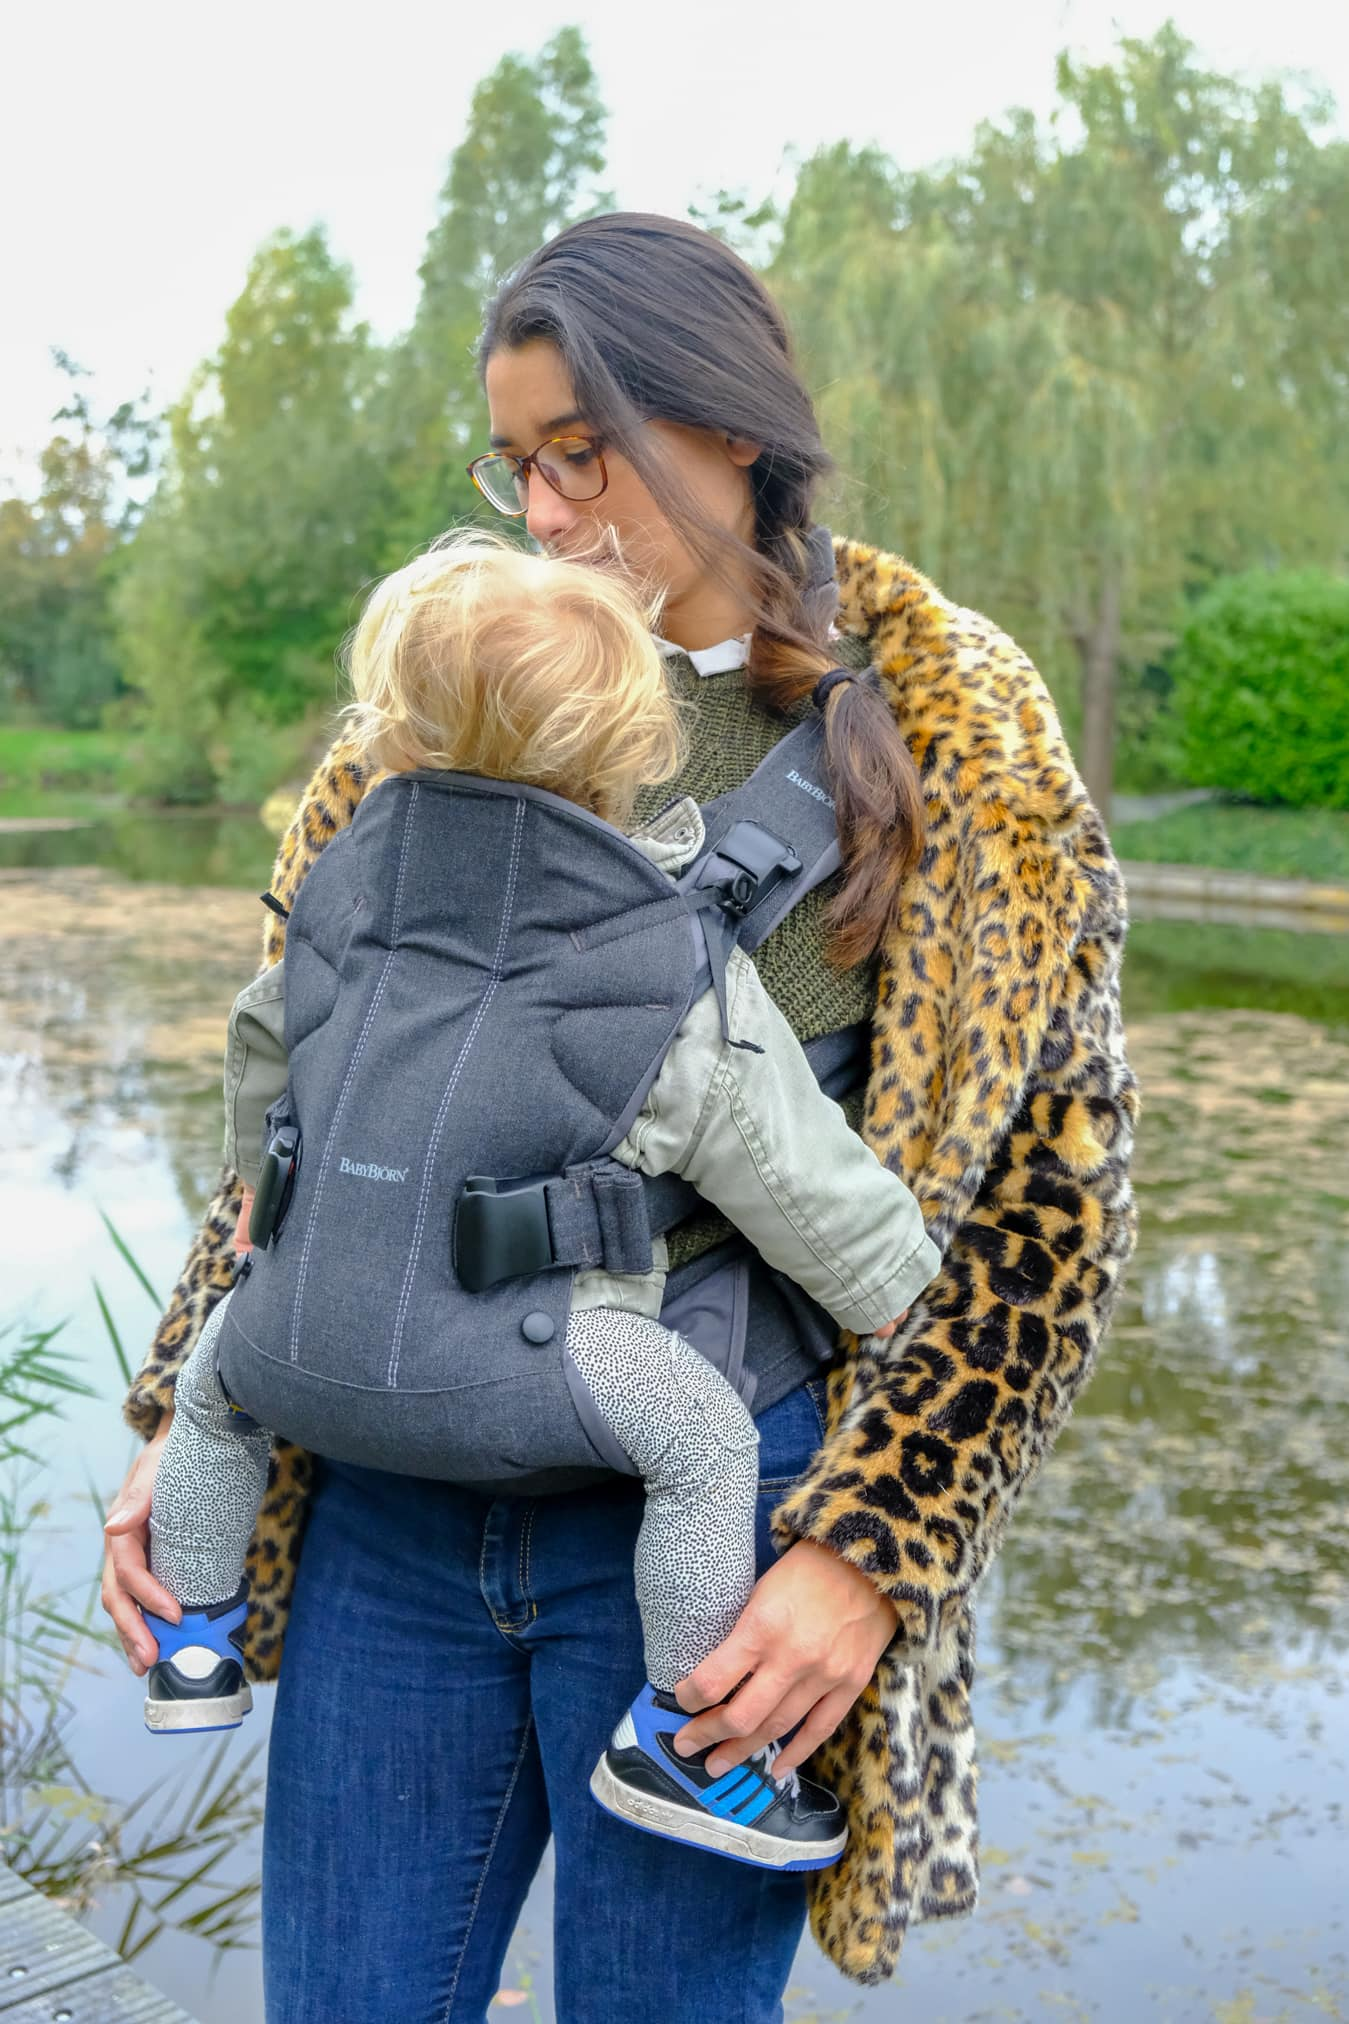 baby björn one baby carrier